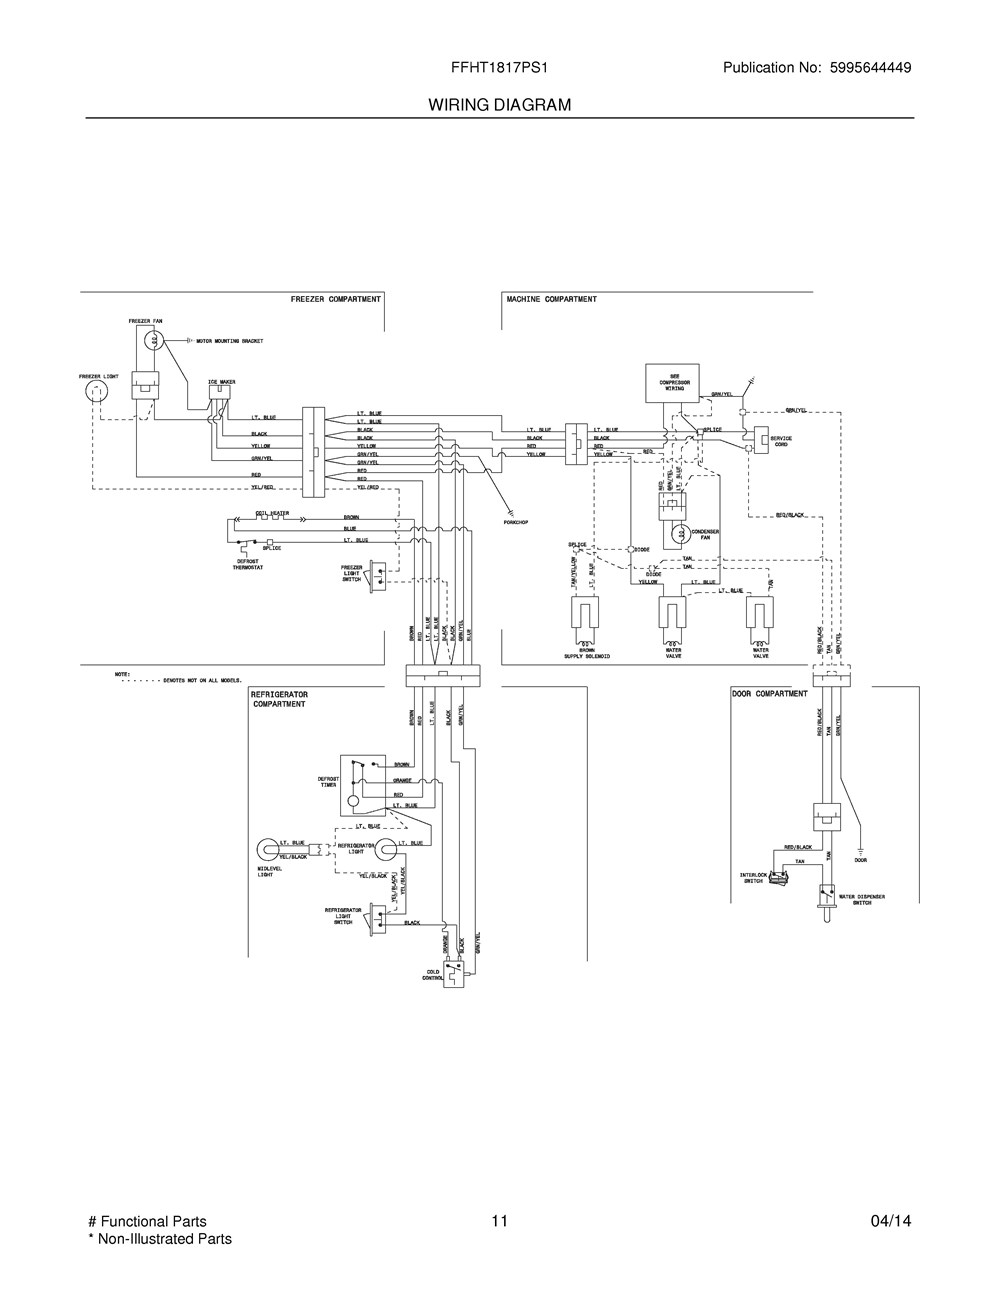 Ffht1817ps1 Frigidaire Company Electrolux Refrigerator Wiring Schematic